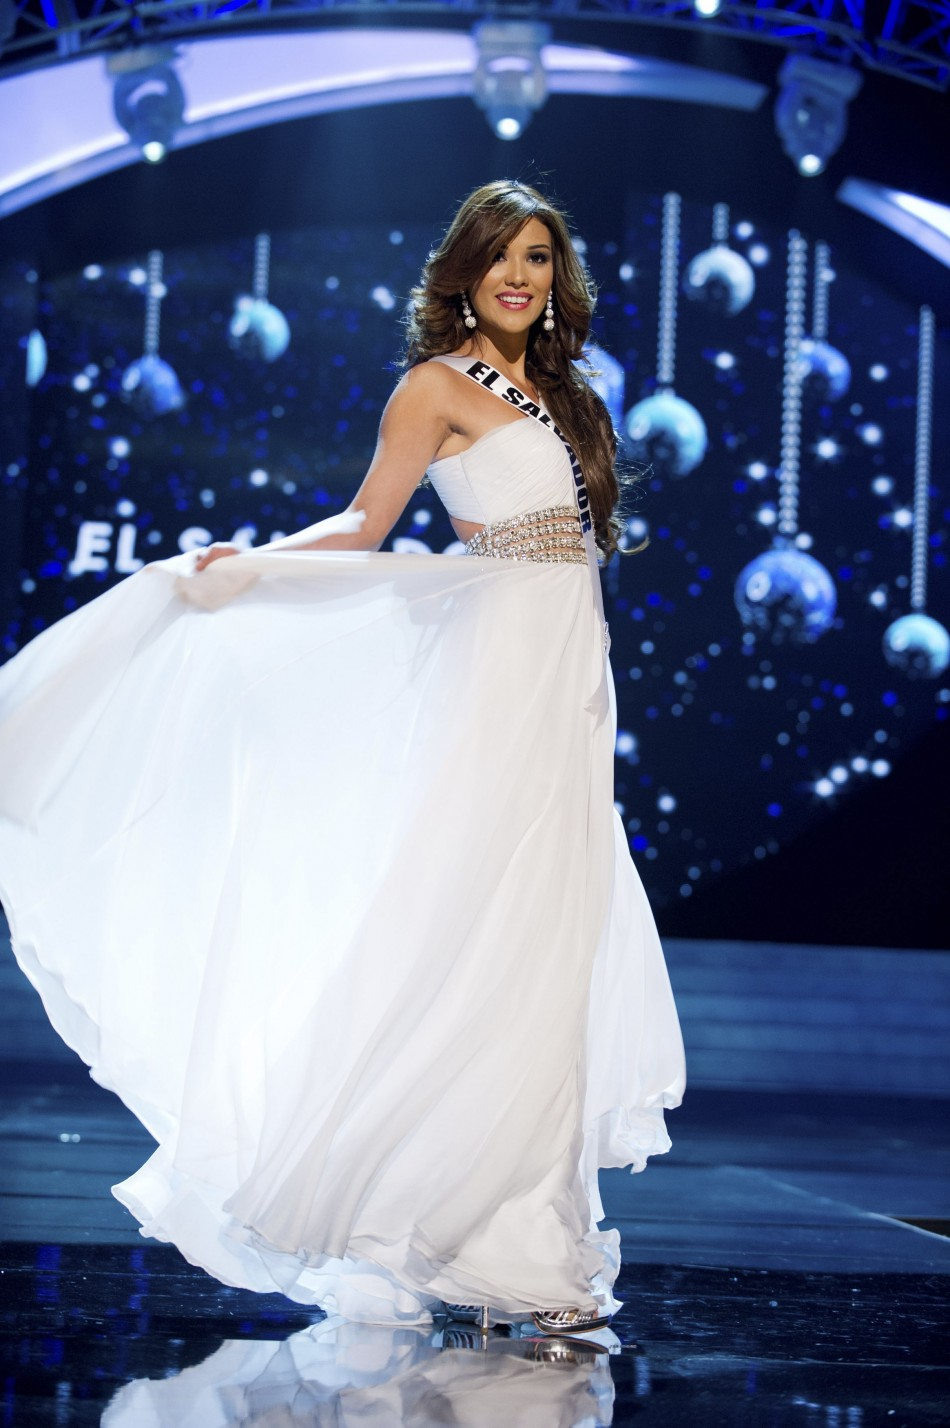 Miss El Salvador 2012 Clavel competes in an evening gown of her choice during the Evening Gown Competition of the 2012 Miss Universe Presentation Show in Las Vega